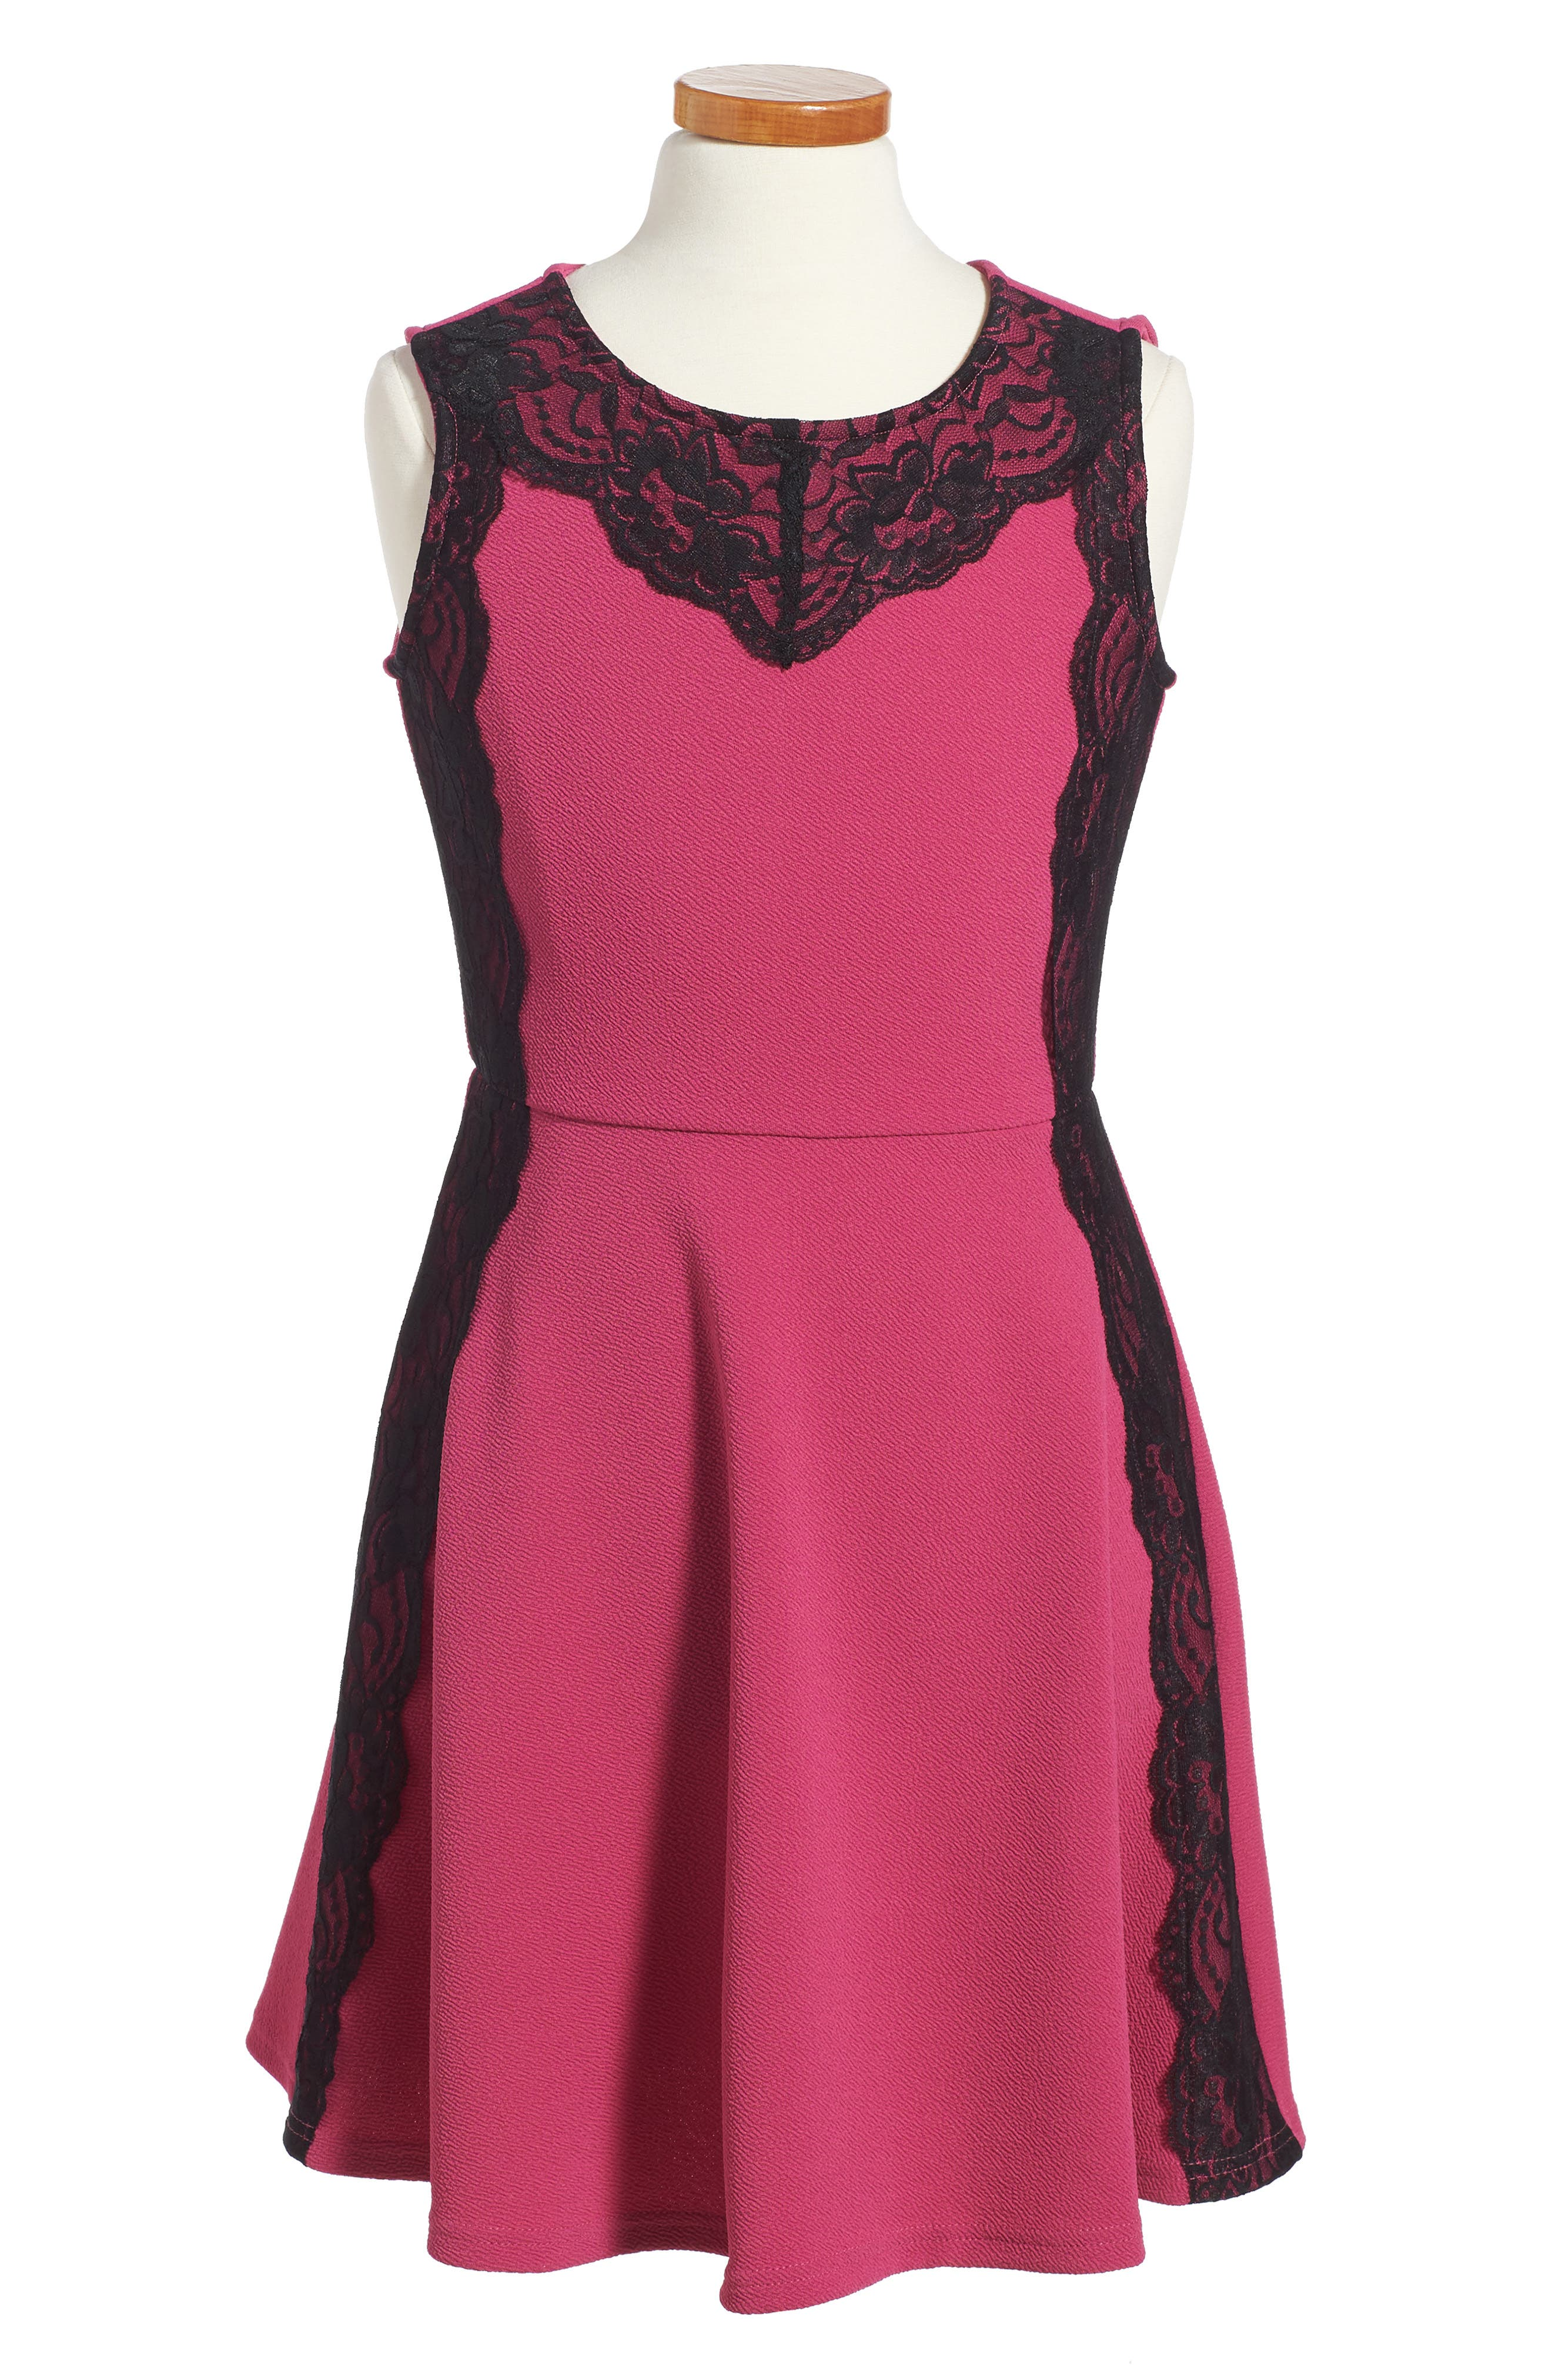 Main Image - BLUSH by US Angels Lace Trim Piqué Dress (Big Girls)